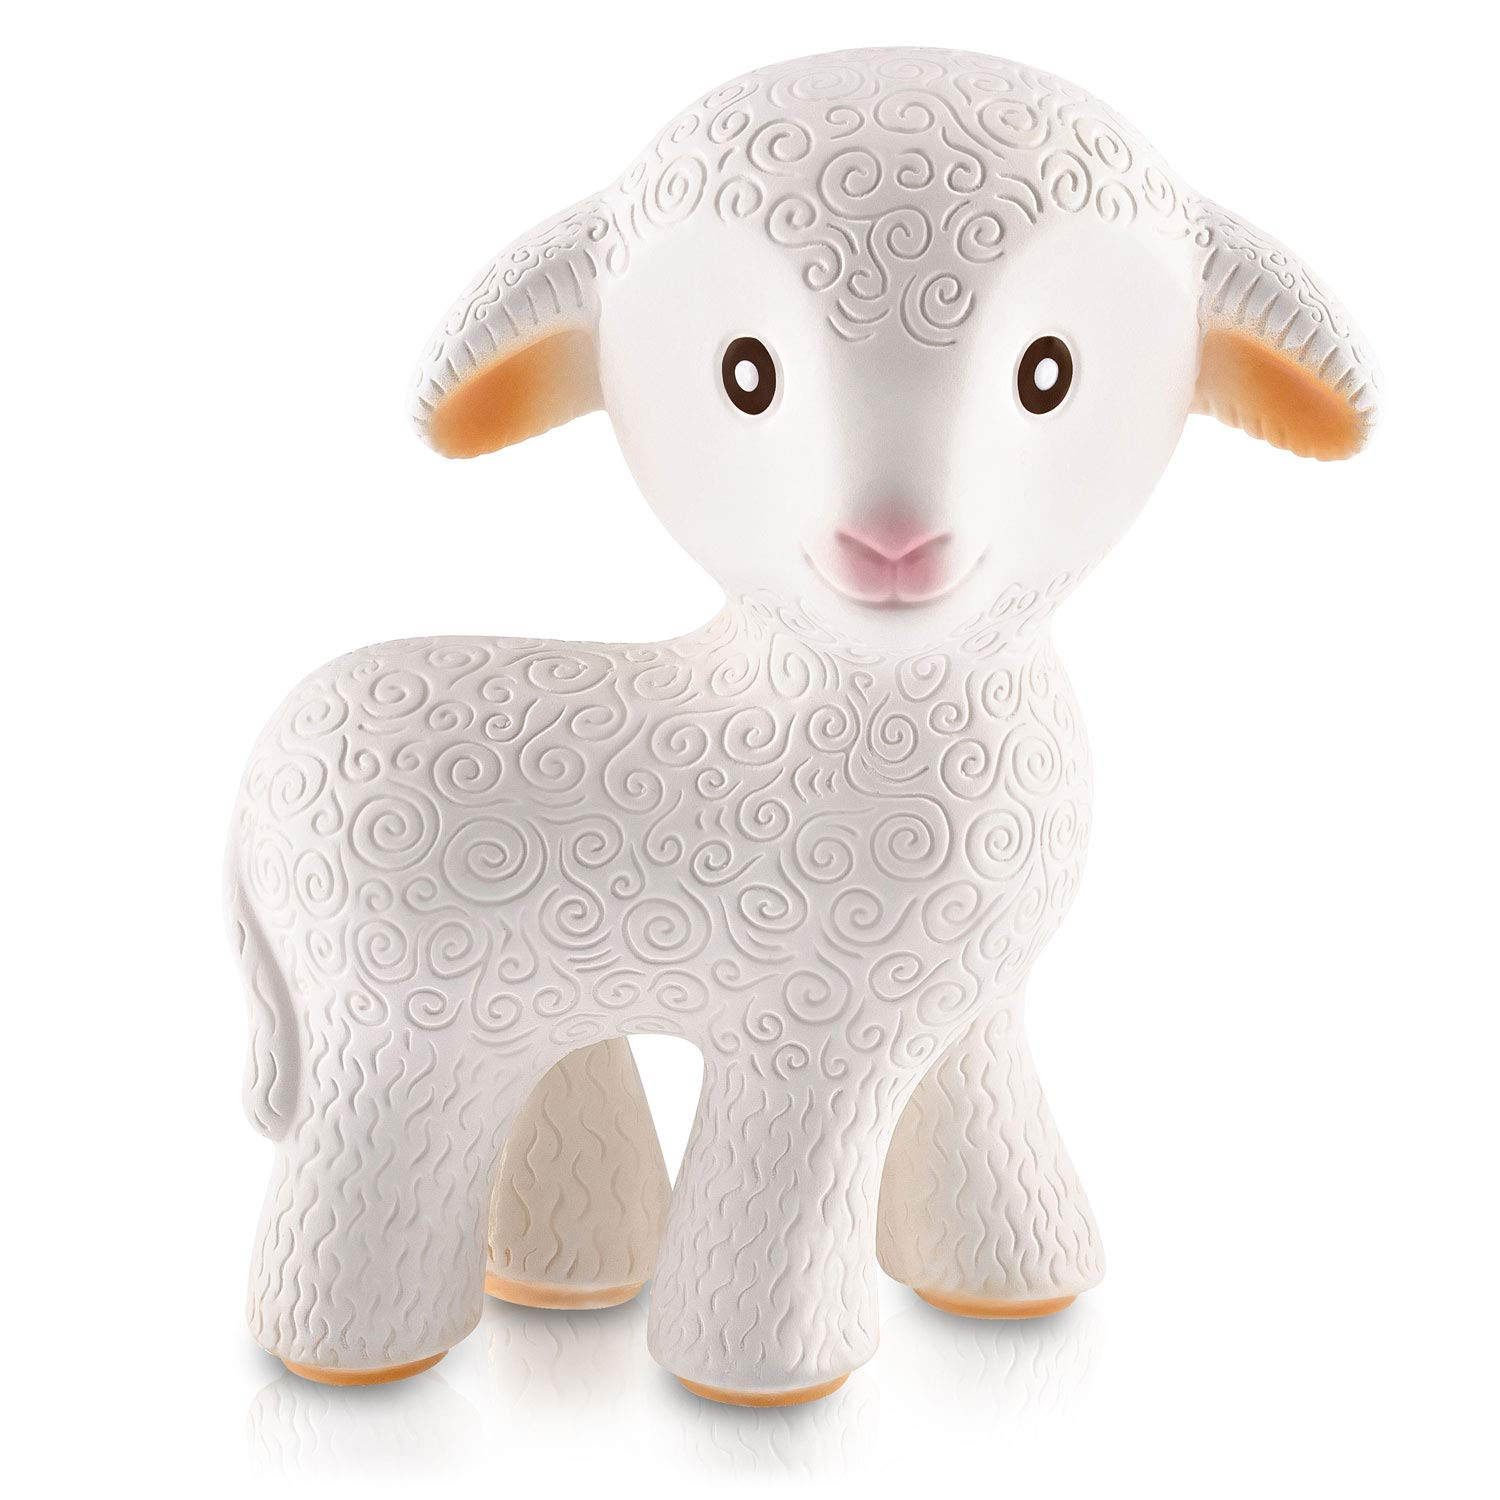 100% Pure Natural Rubber Teething Toy - Mia the Lamb – Hole Free, BPA, PVC, phthalates Free, Hermetically Sealed, All-Stage Teething Toy, Eco-Friendly, Natural, Certified Non-Toxic, Mold Free,Textured